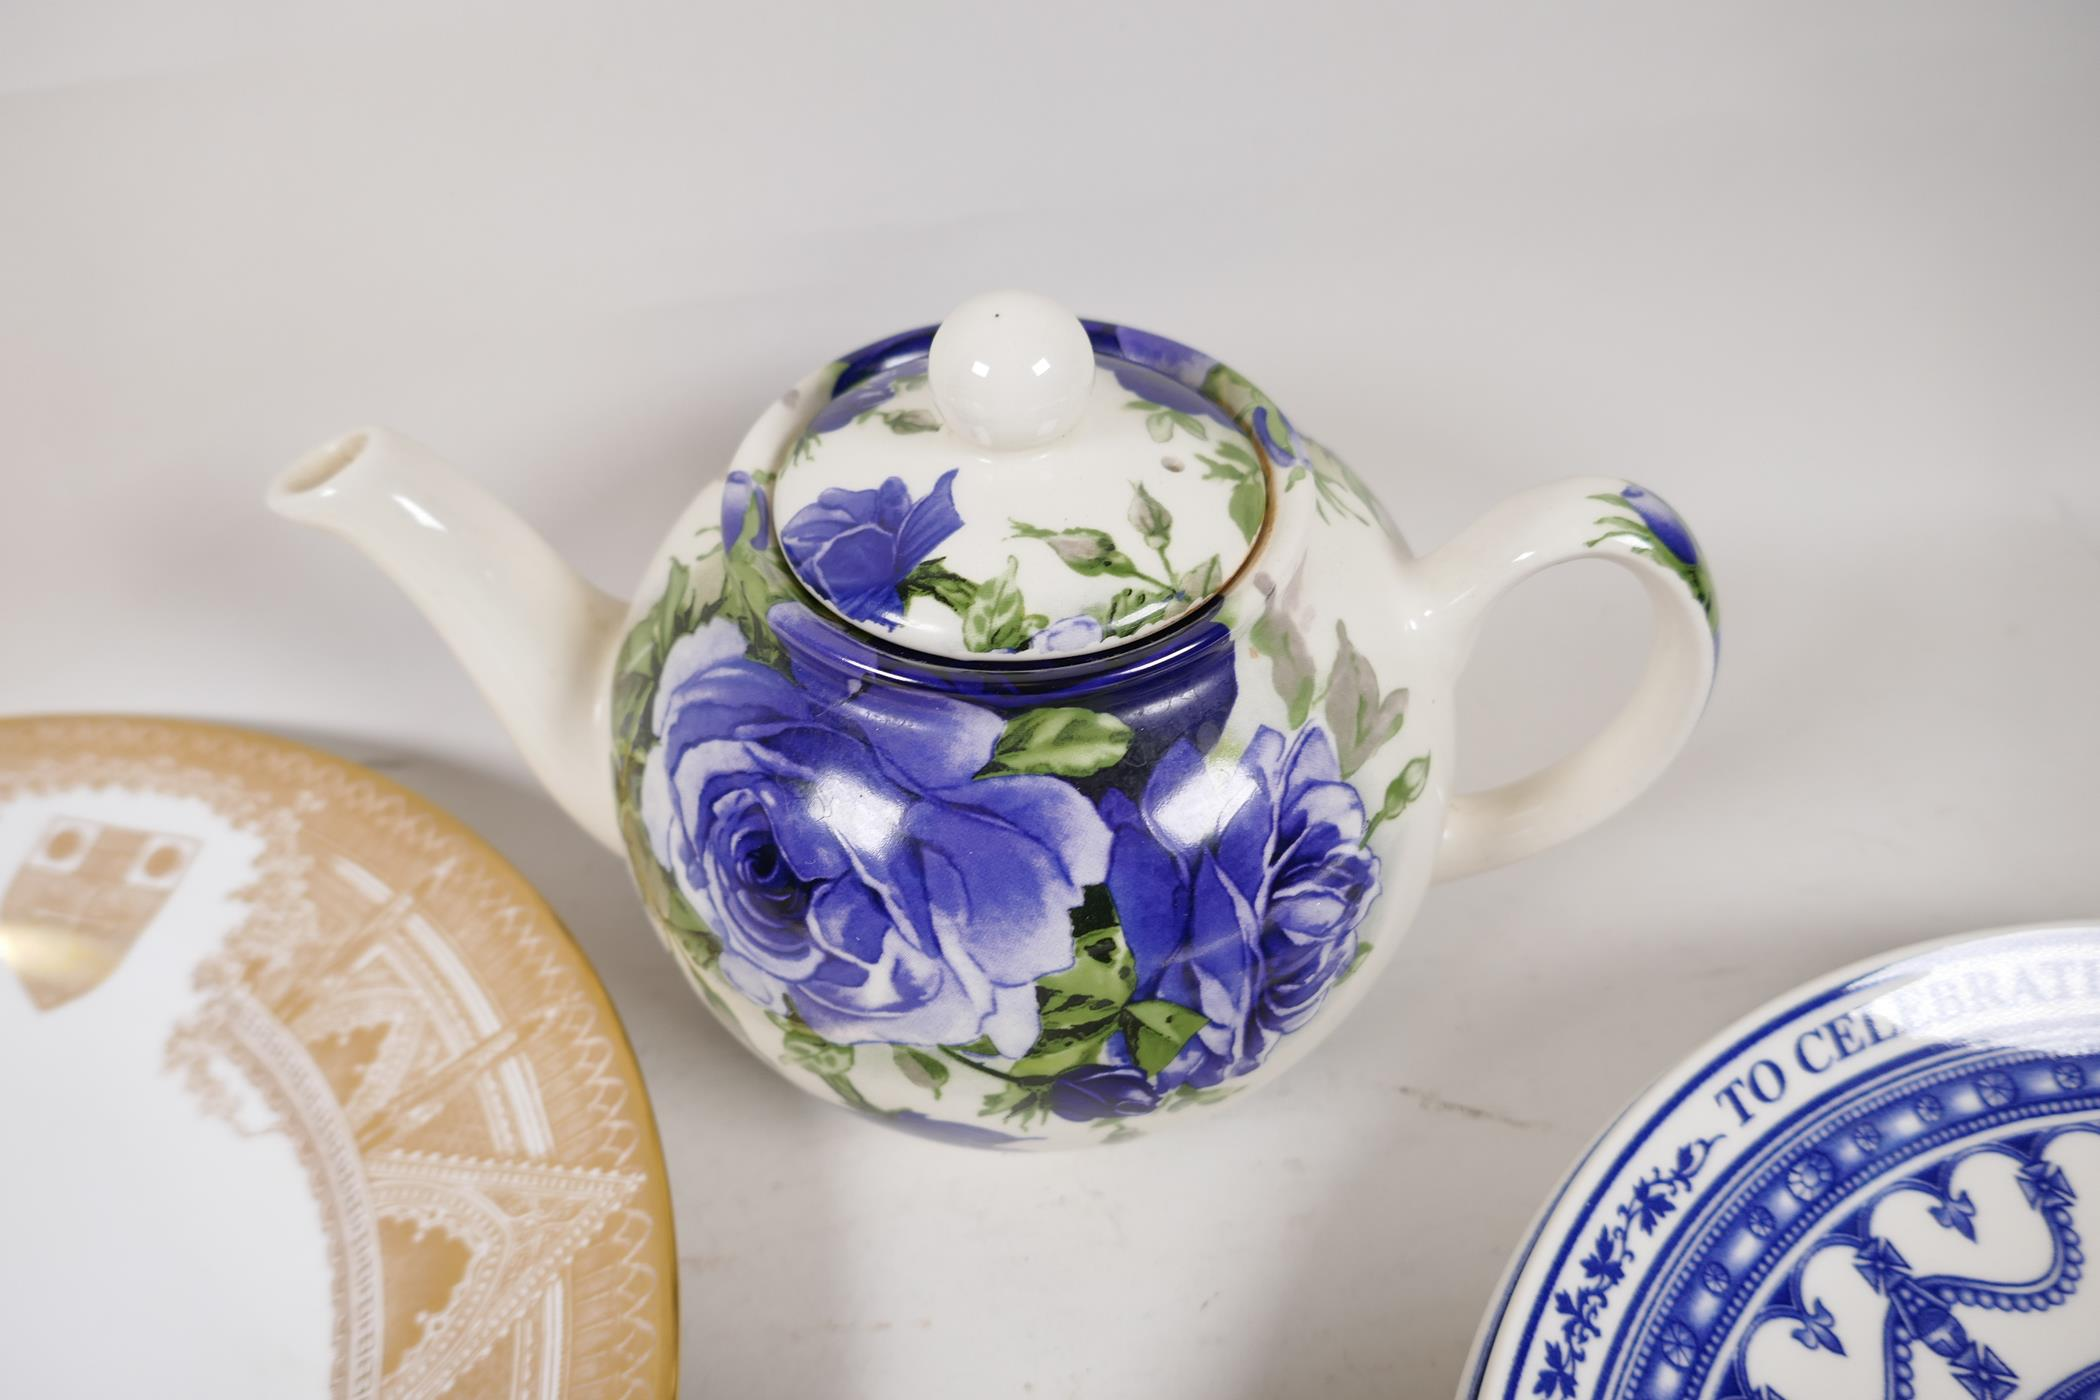 A quantity of decorative pottery and porcelain to include Royal Doulton, Wedgwood, Spode etc - Image 6 of 6